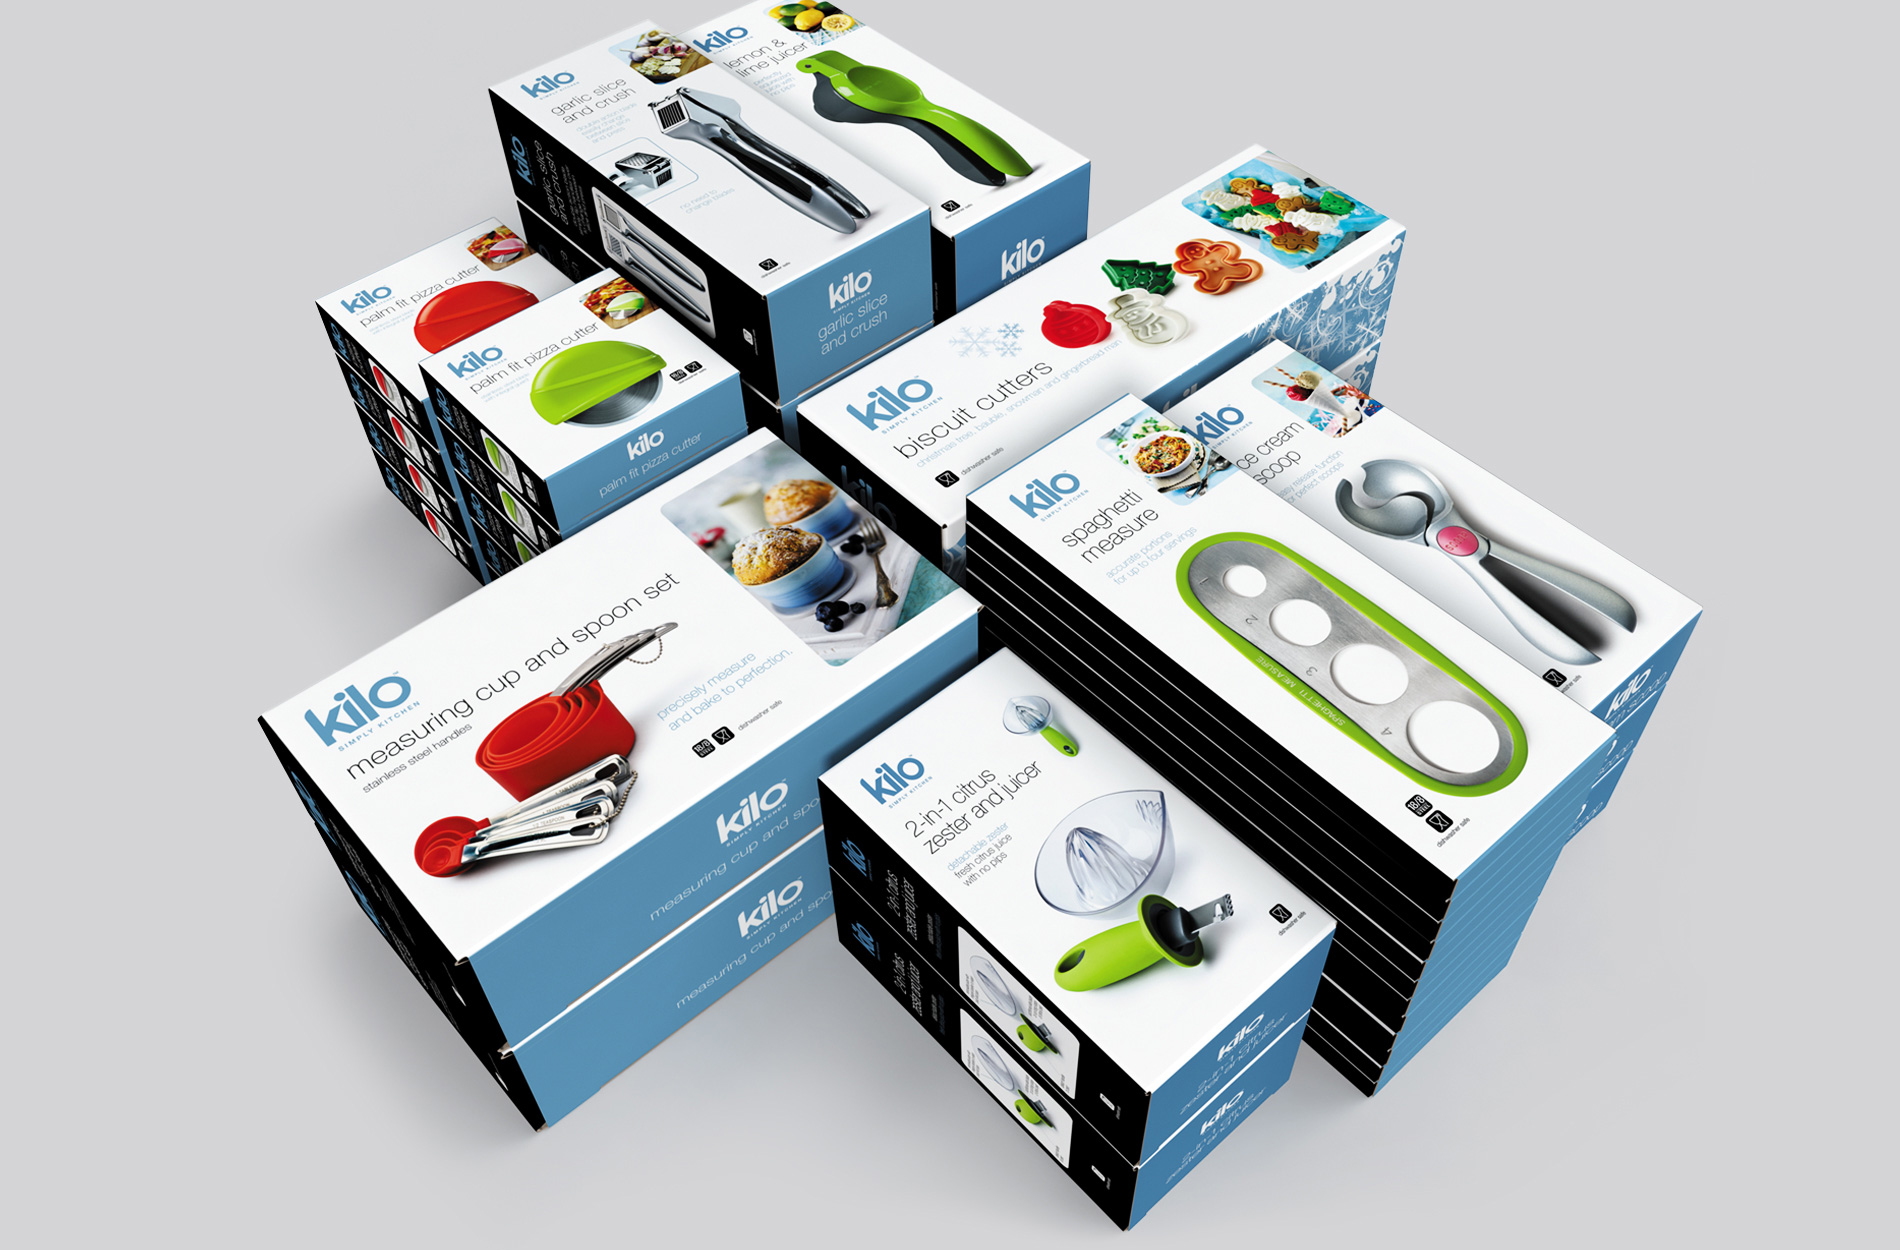 Retail box packaging for CKS Kilo kitchenware